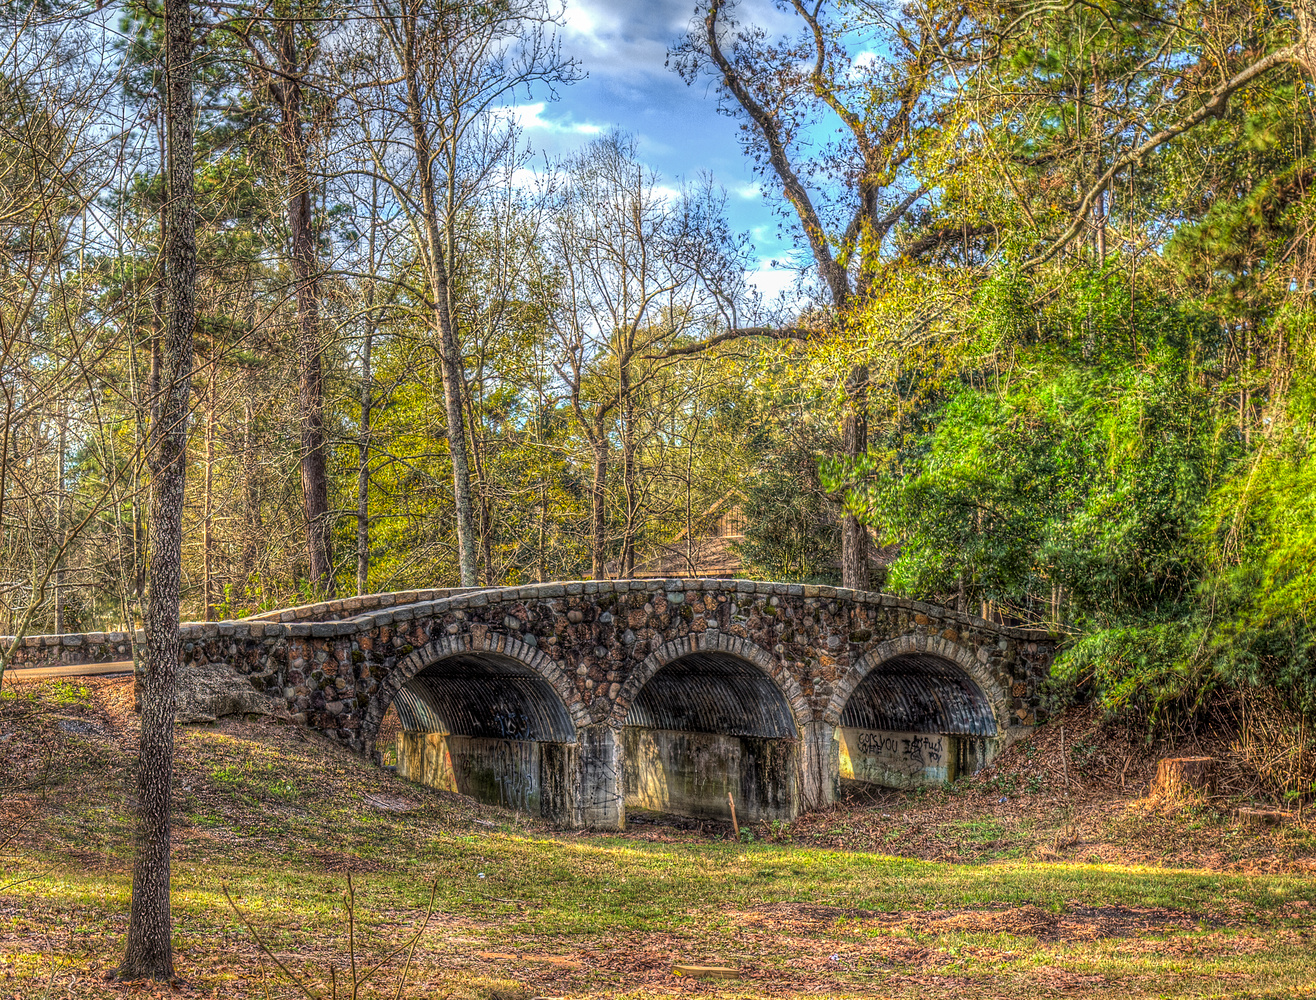 Stone Bridge in Mandeville, LA by David Pavlich